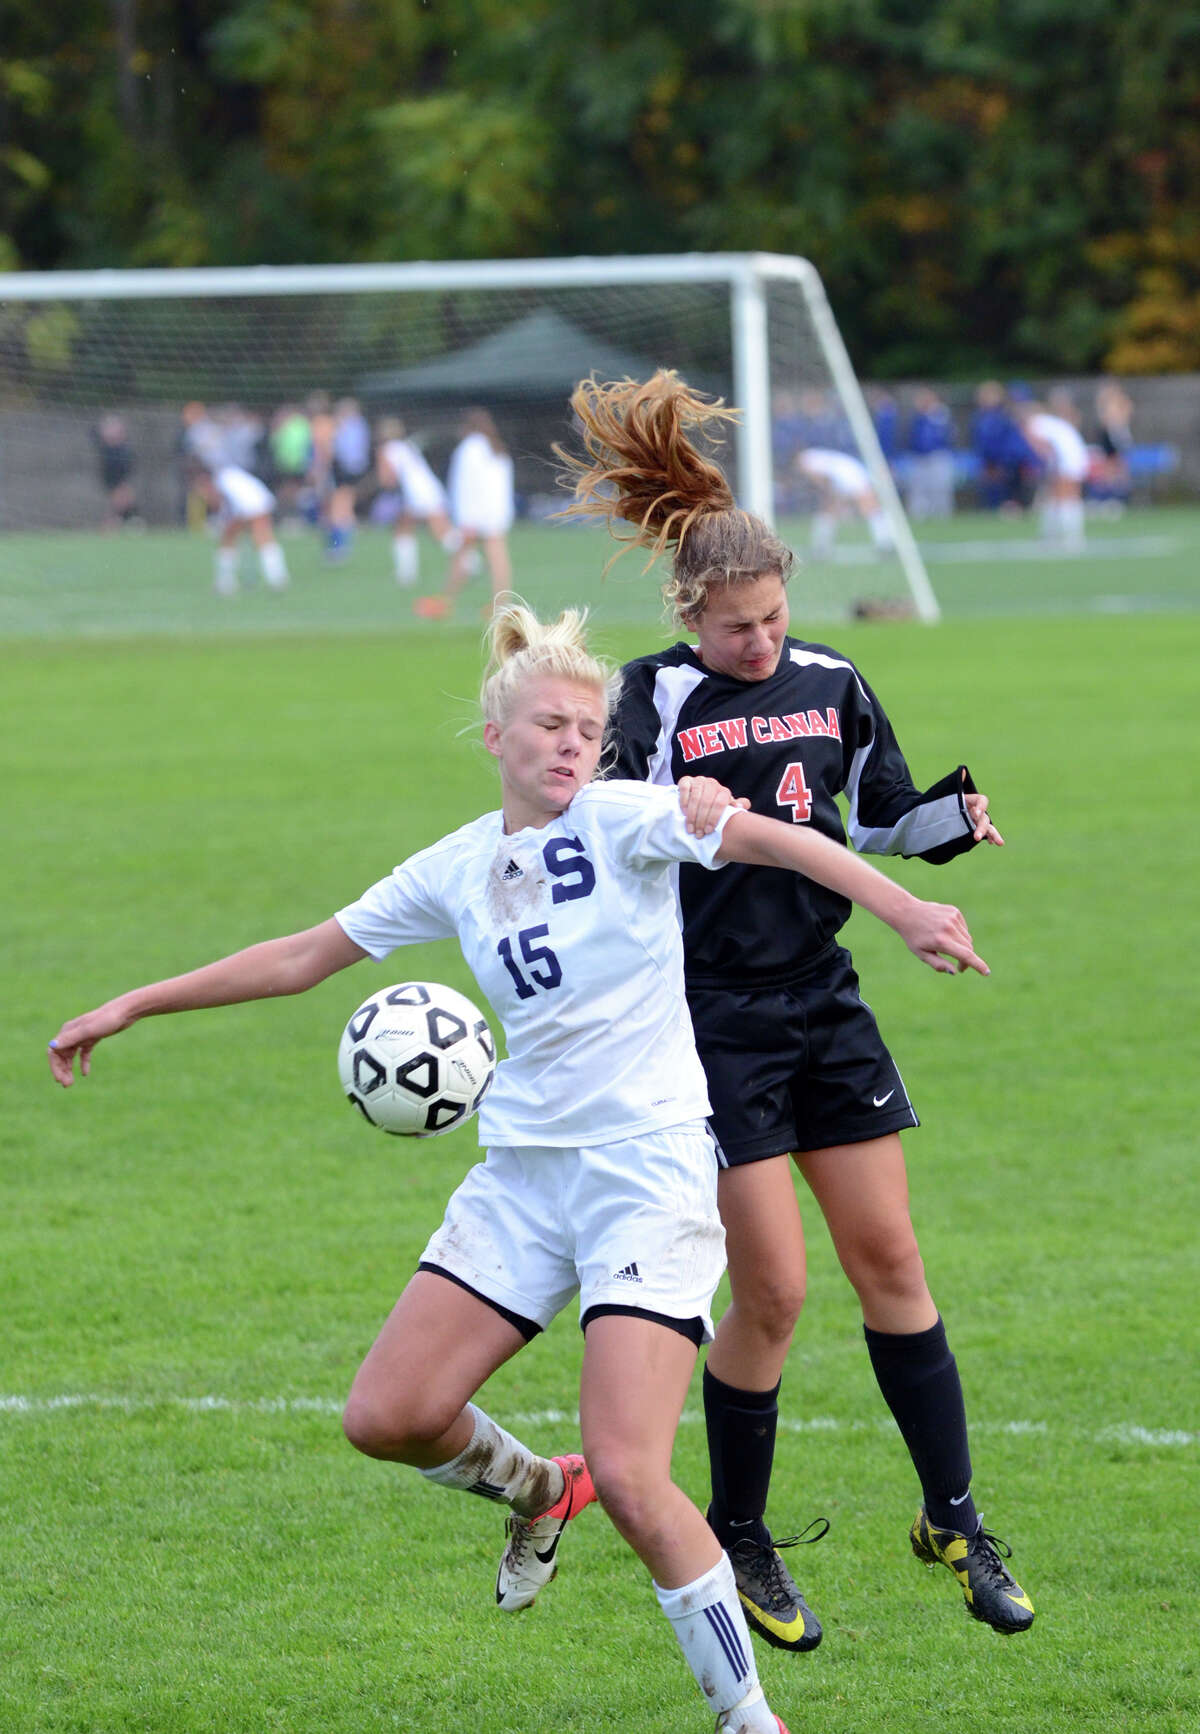 New Canaan's Marina Braccio (4) challenges Staples' Ryan Kirshner (15) for the ball during the girls soccer game at Loeffler Field at Staples High School in Westport on Tuesday, Oct. 23, 2012.